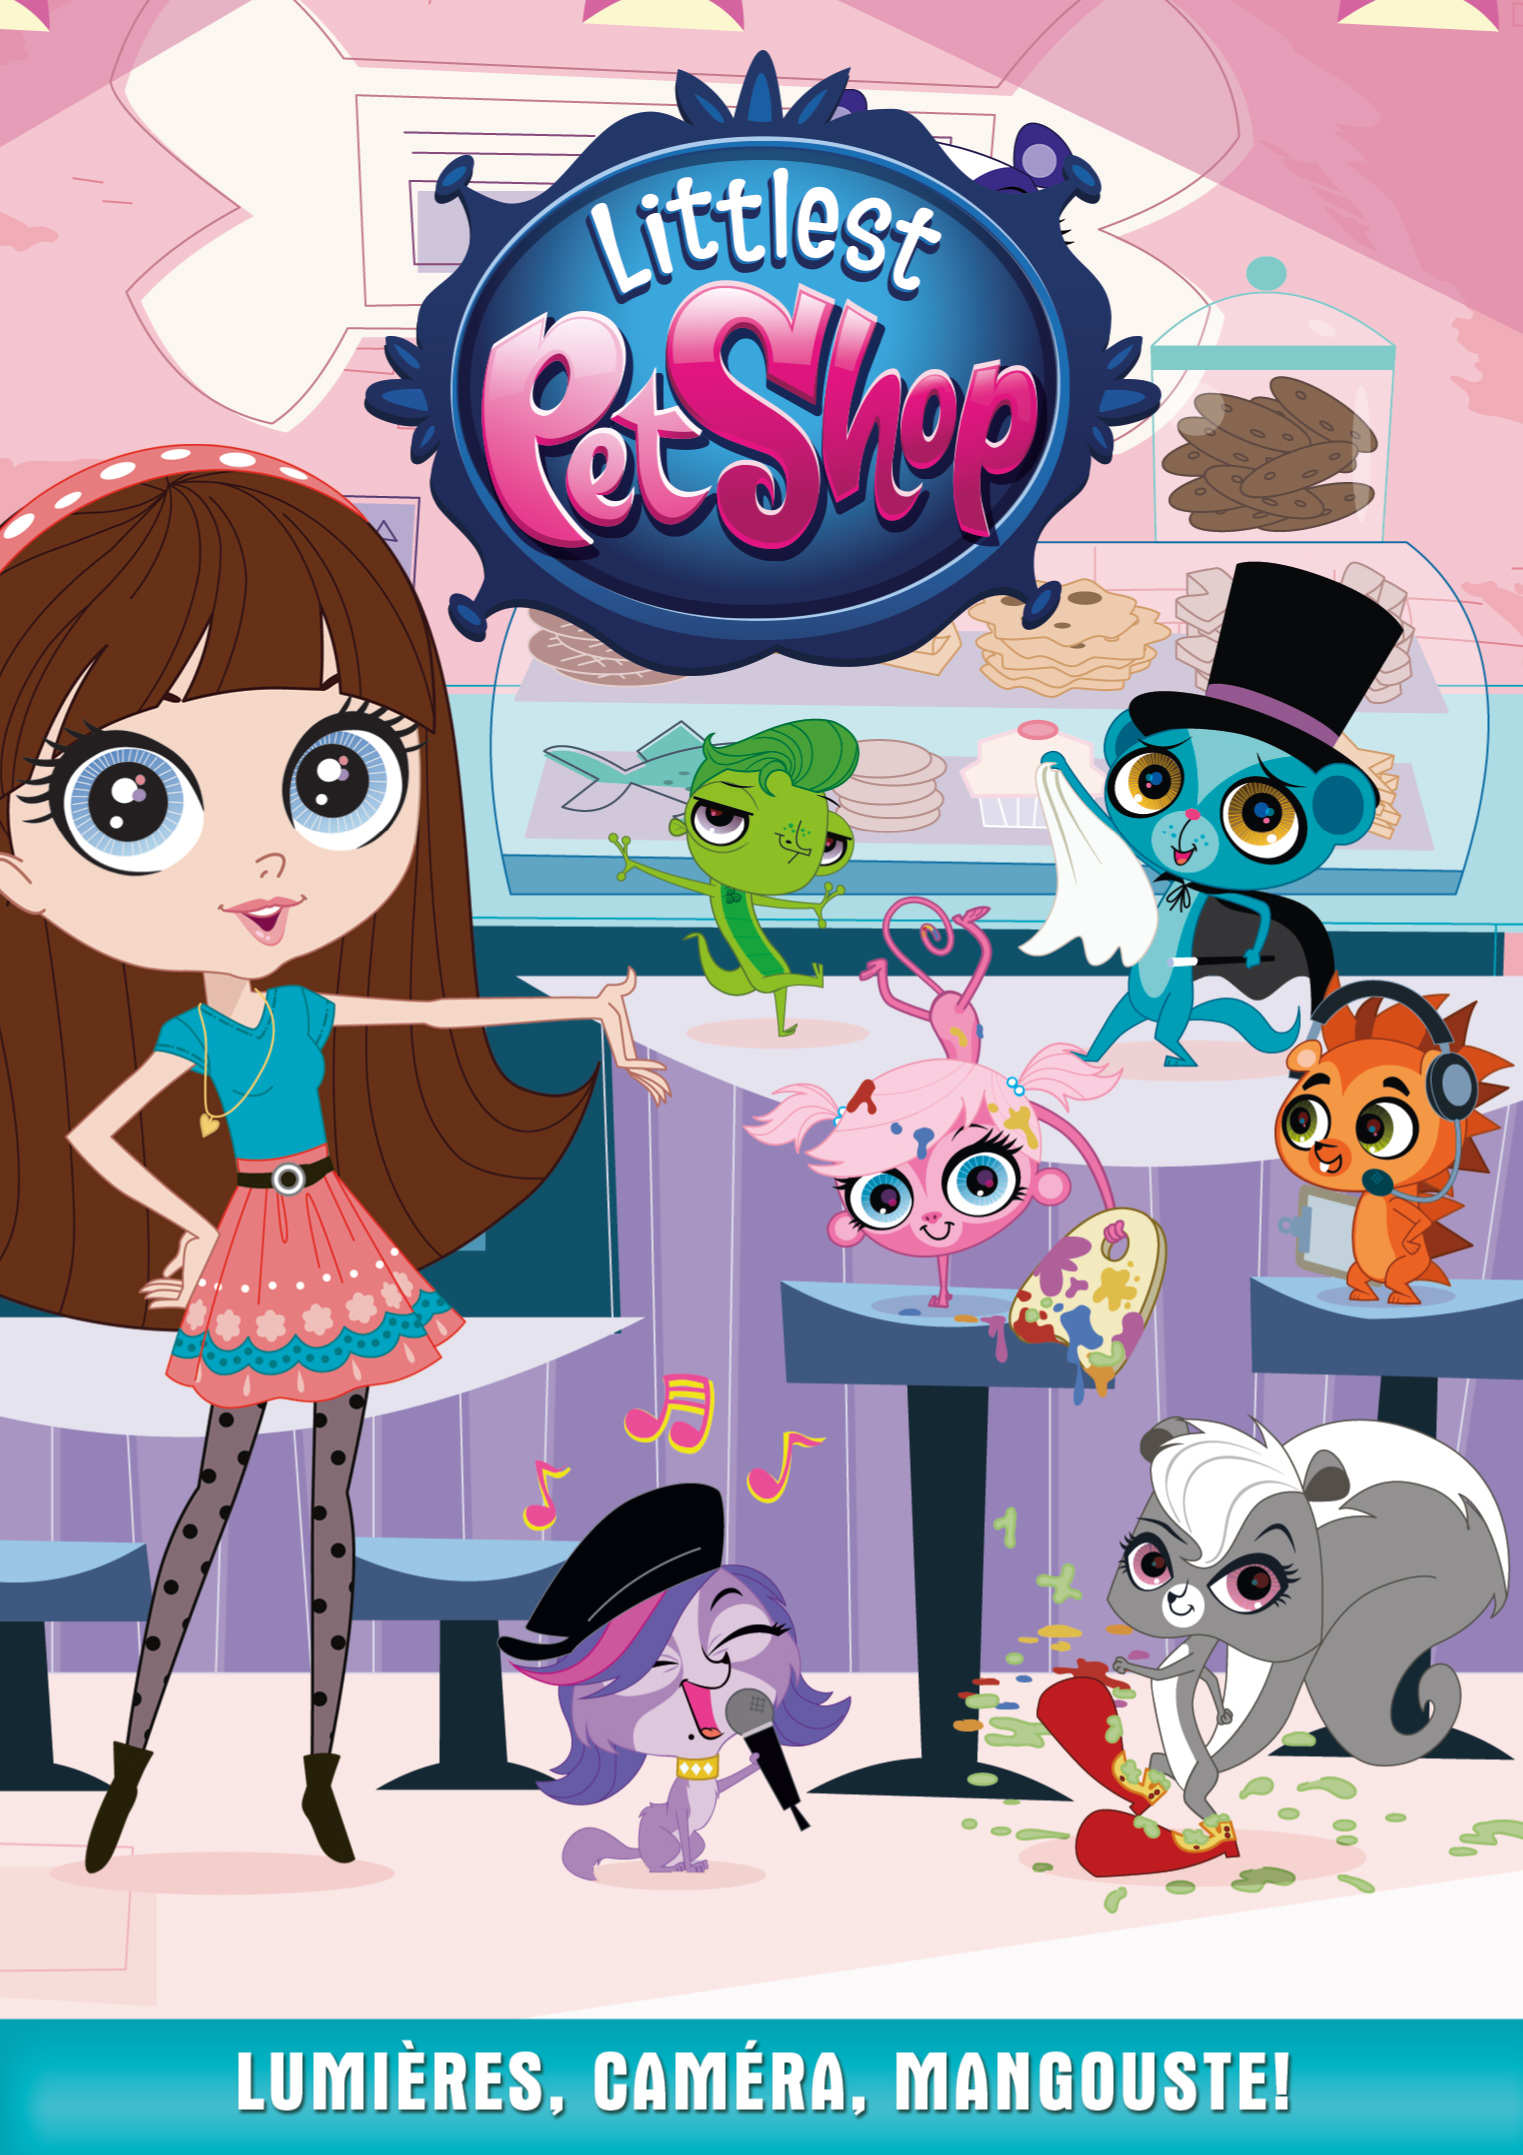 DVD_littlest_Pet_shop_lumieres_cameras_mangoustes